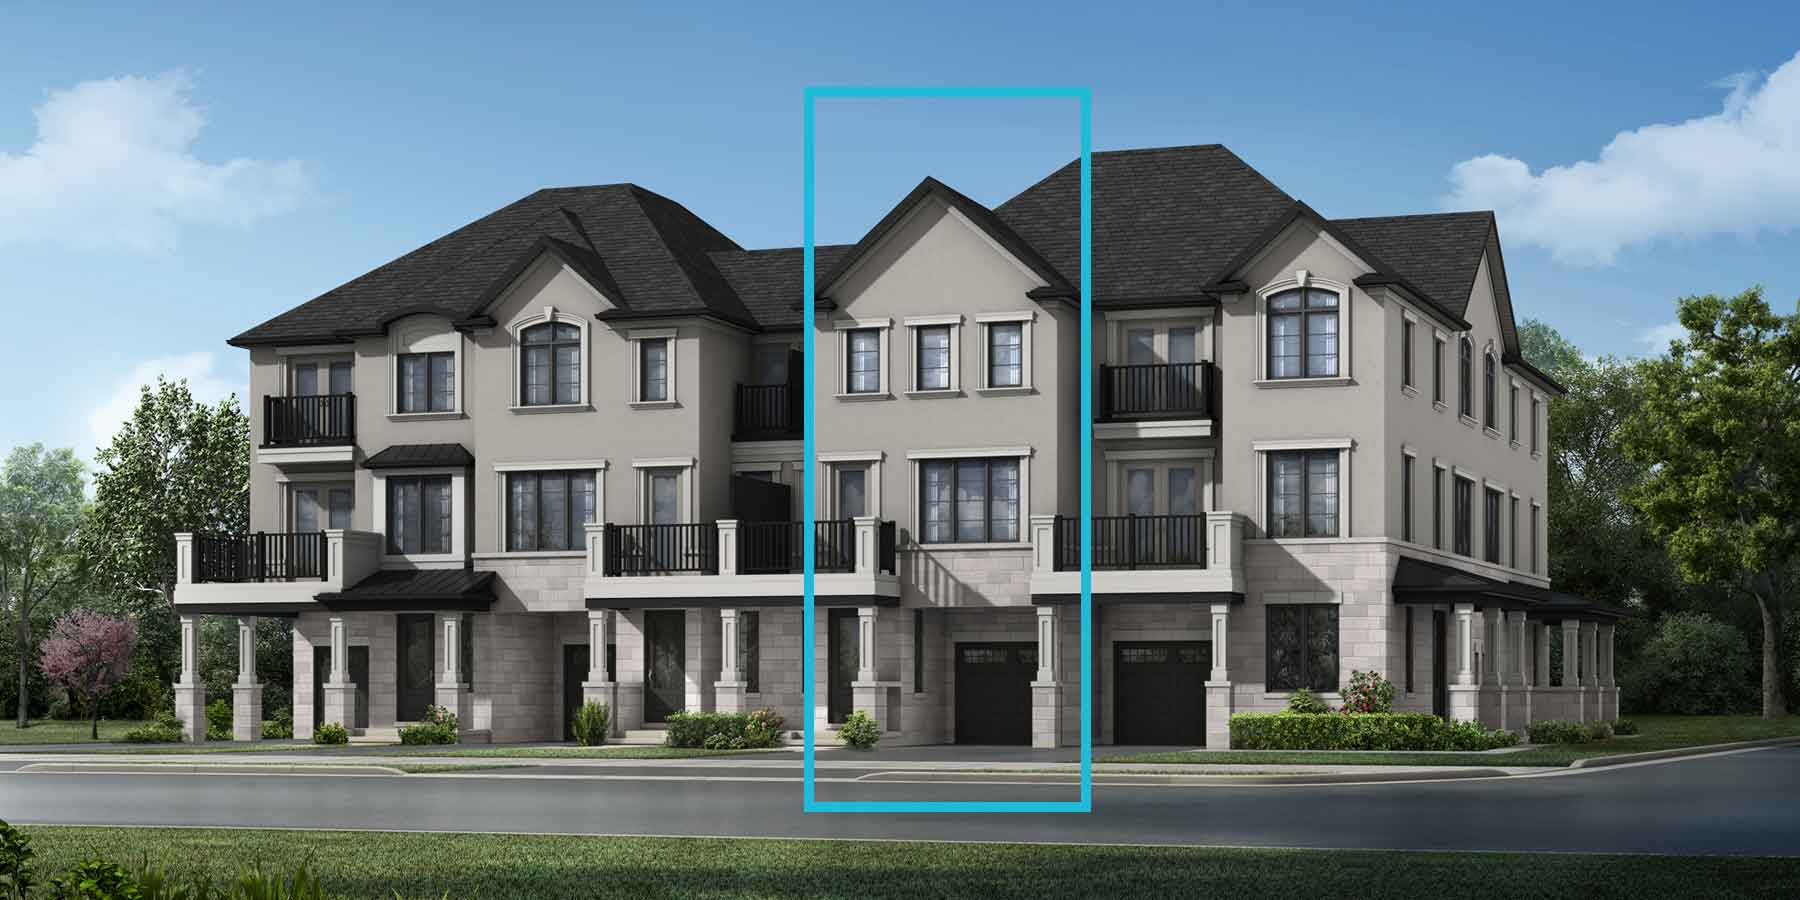 Richmond Plan TownHomes at The Nine in Mississauga Ontario by Mattamy Homes